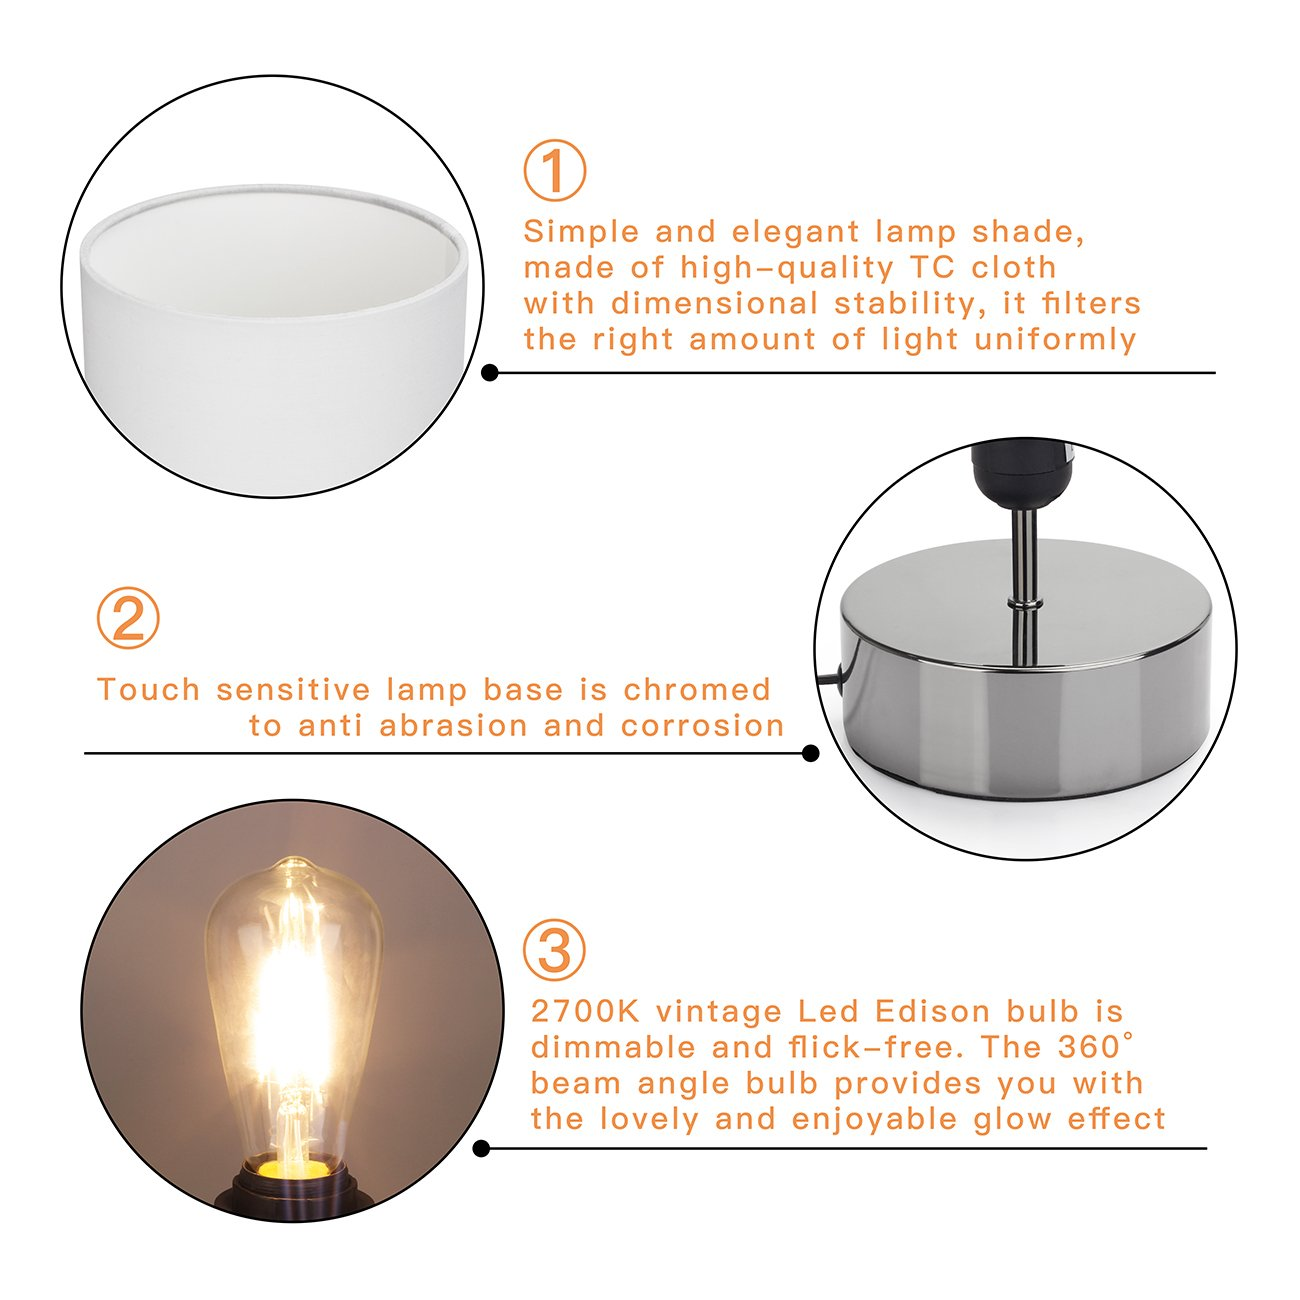 Touch Control Table Lamp Bedside Minimalist Desk Lamp Modern Accent Lamp Dimmable Touch Light with Cylinder Lamp Shade Night Light Nightstand Lamp for Bedroom Living Room Kitchen, E26 Bulb Included by Seaside village (Image #5)